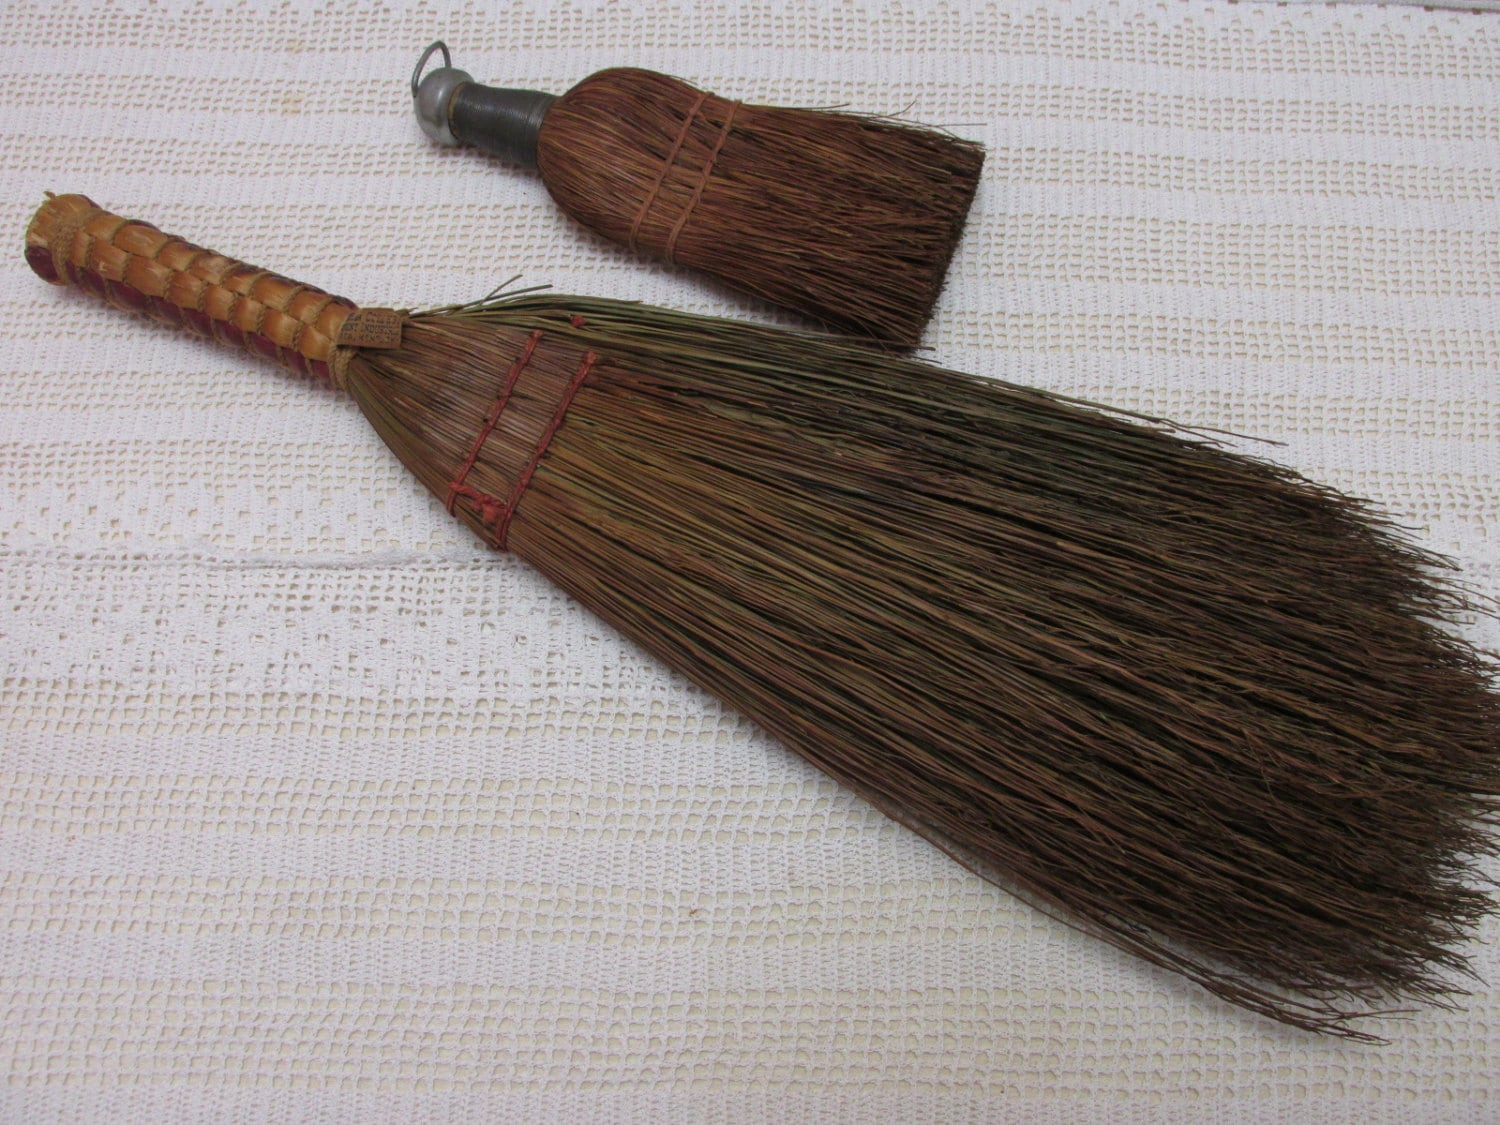 antique hearth broom images reverse search